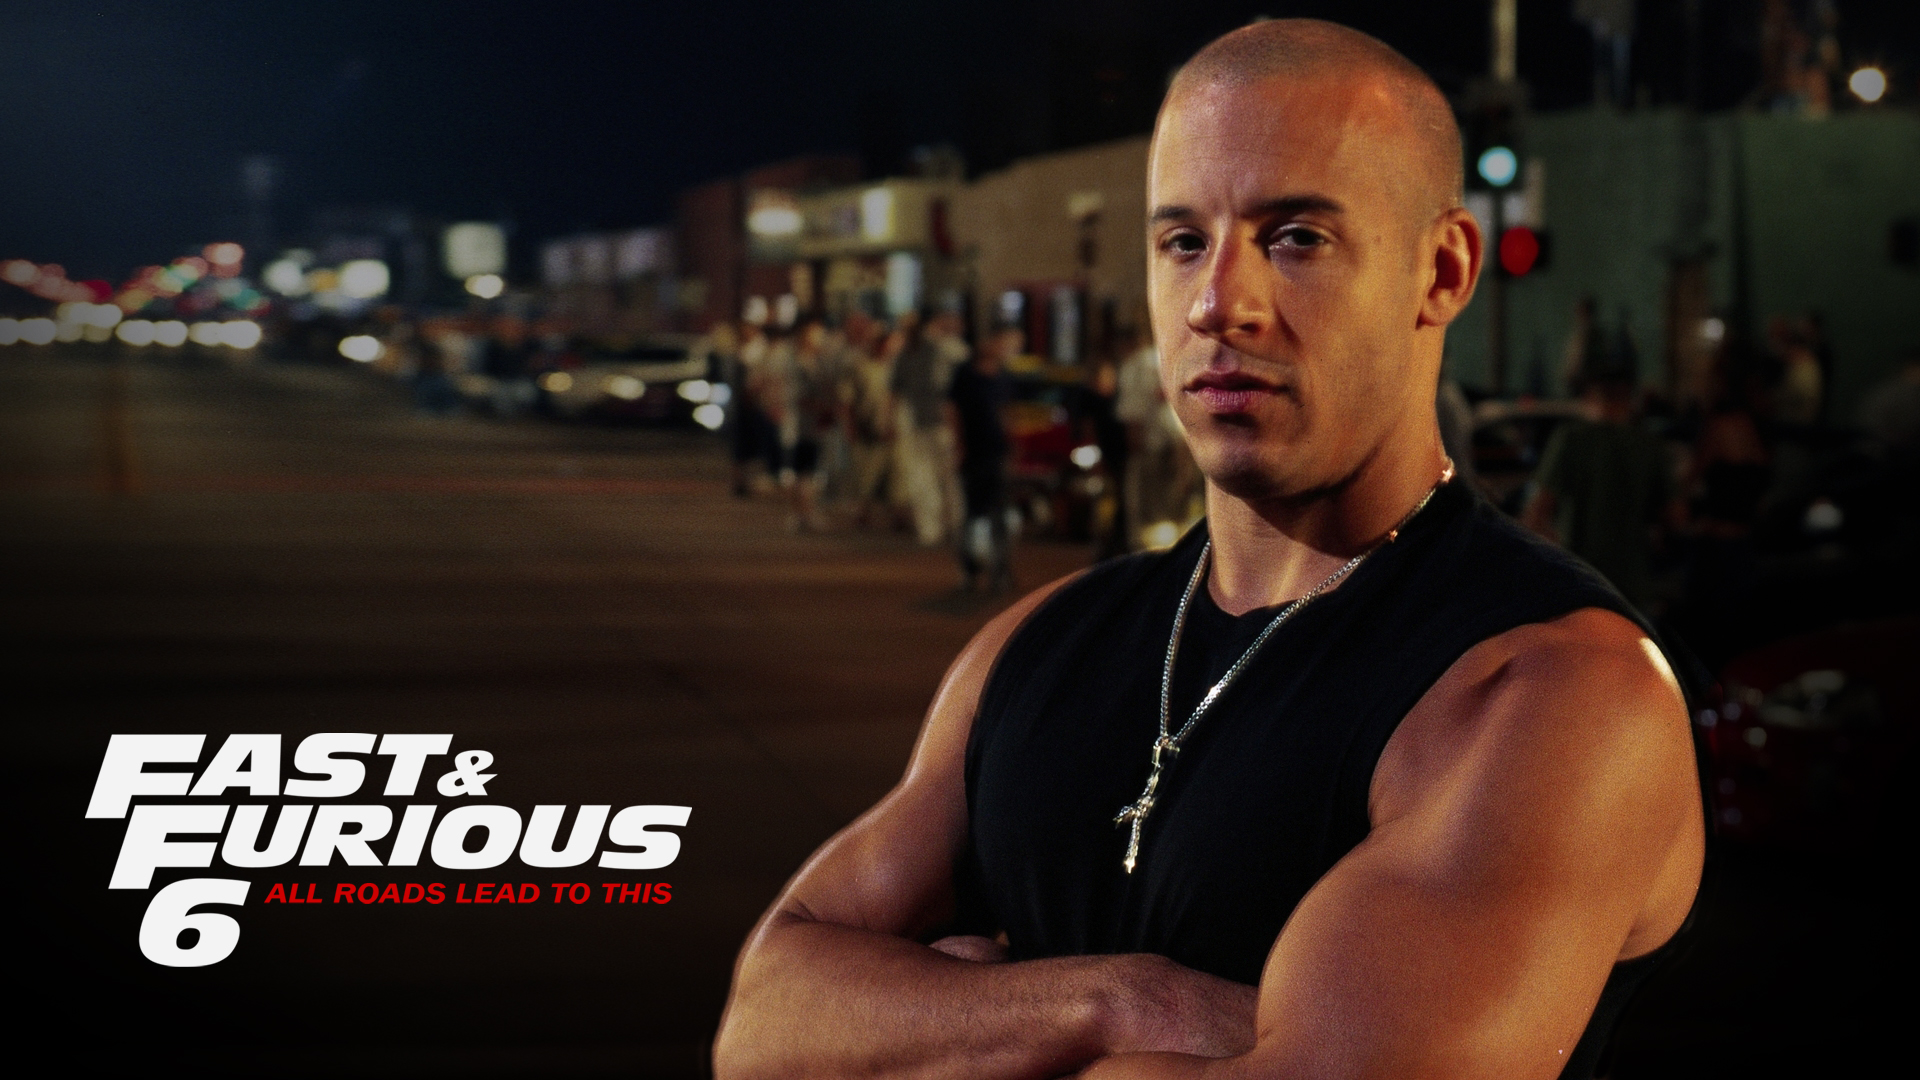 Vin-Diesel-Fast-and-Furious-6-HD-Wallpaper